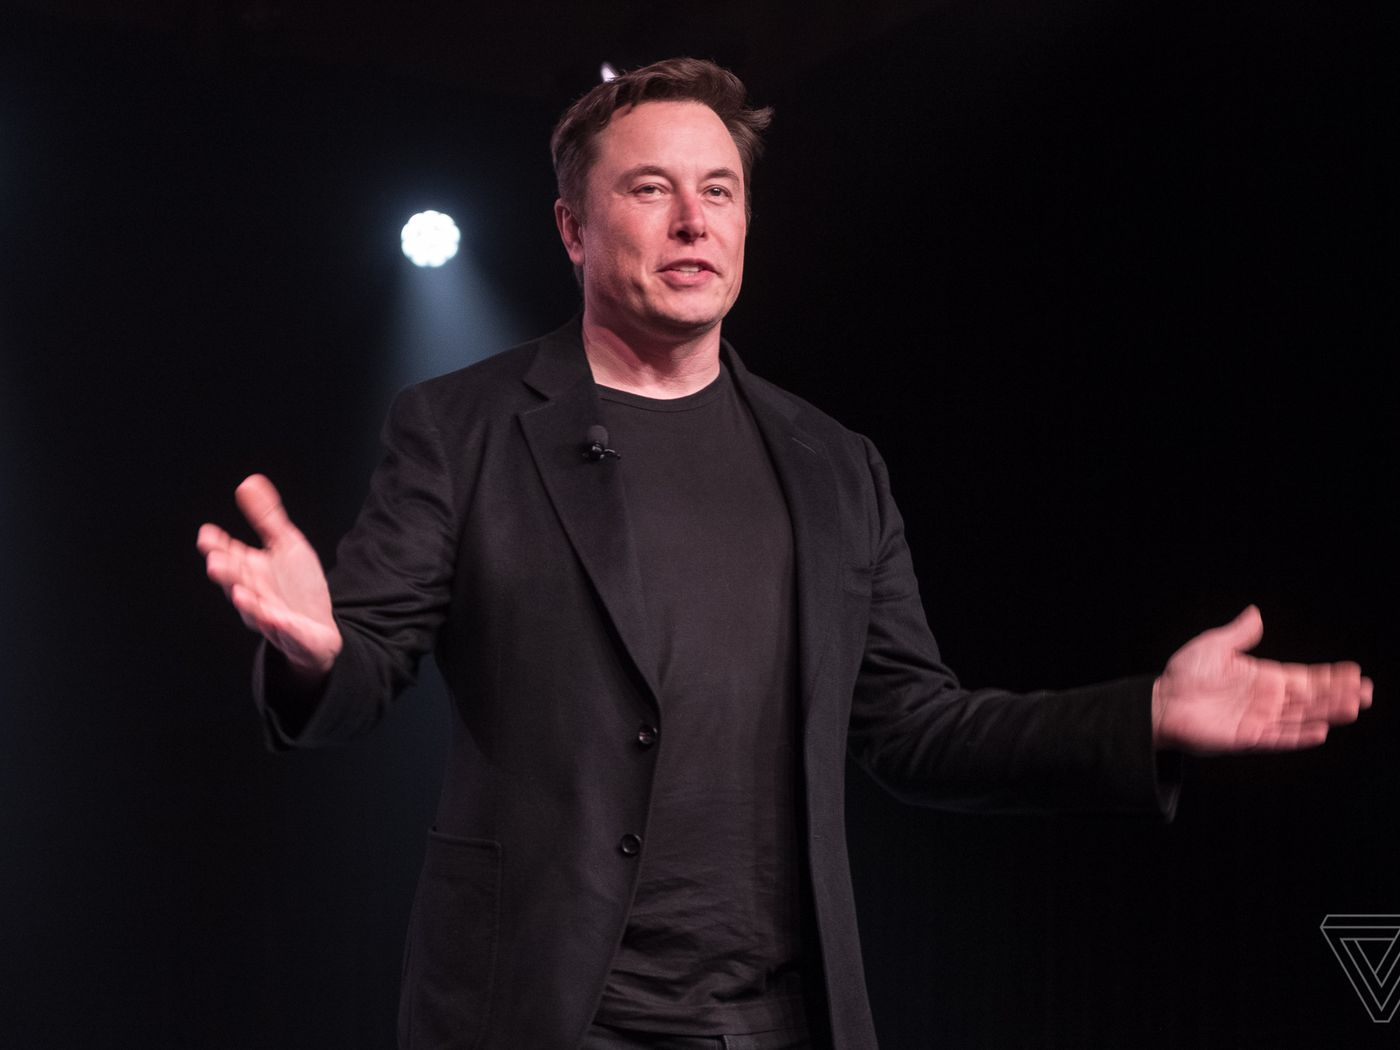 SpaceX India: Indian telecom industry, currently dominated by Mukesh Ambani's company Reliance Jio, could get competition from Elon Musk.